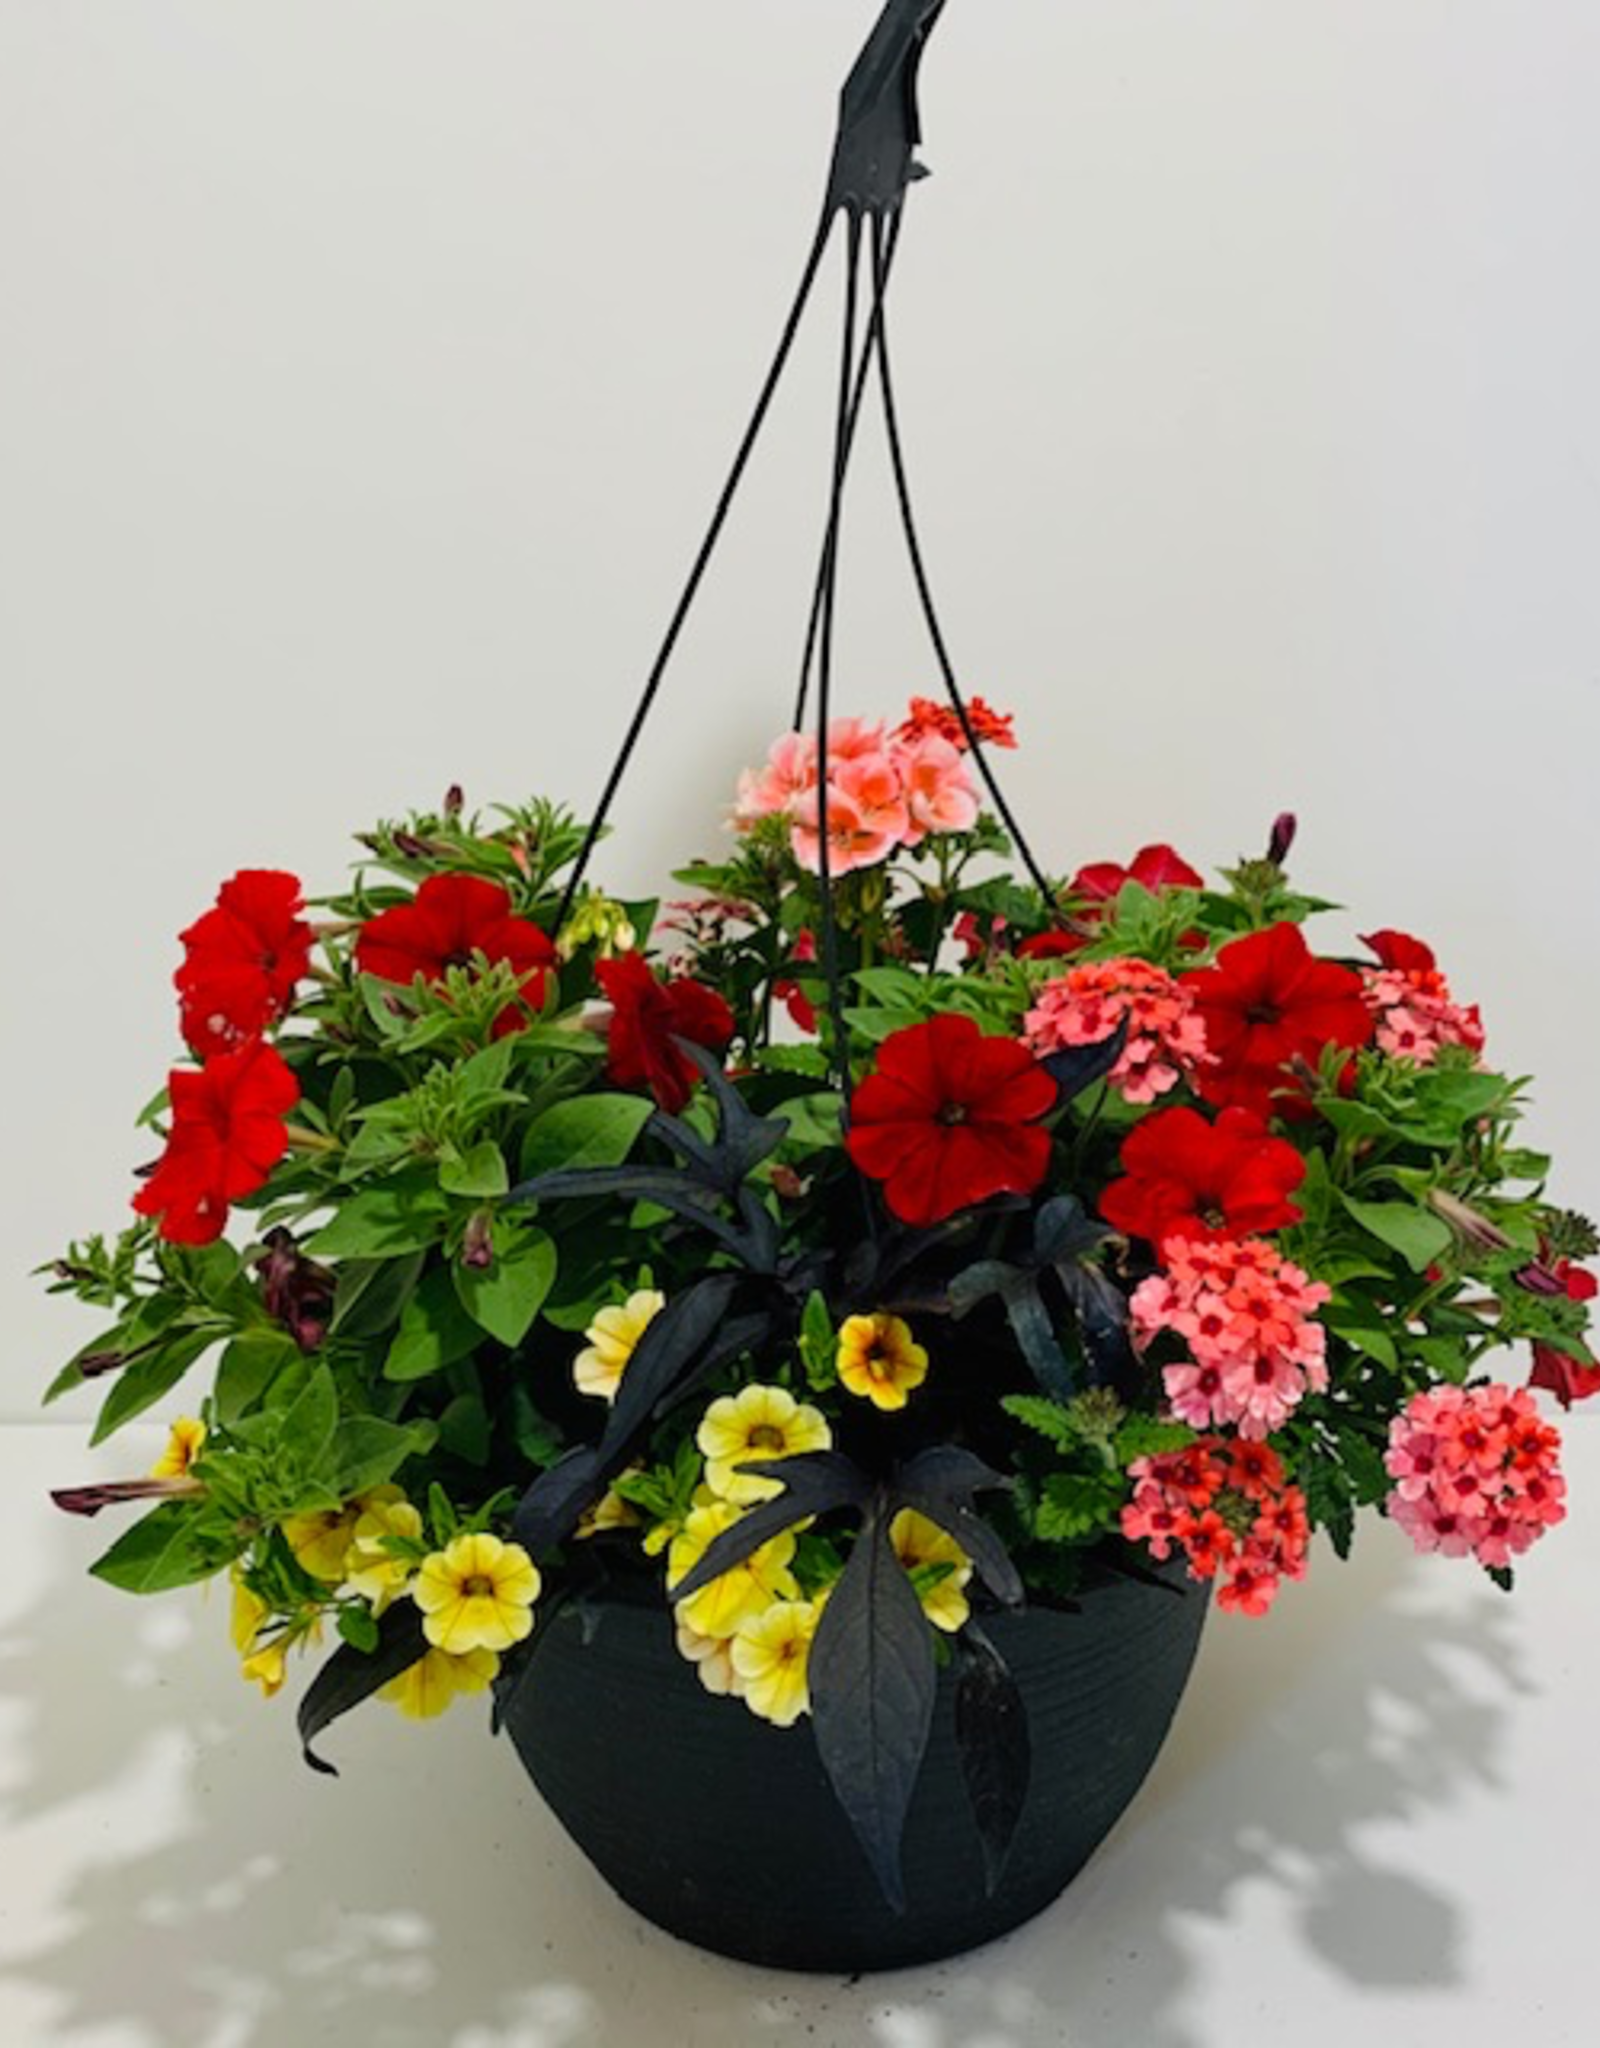 Hanging Basket, Assorted Annuals, 12""